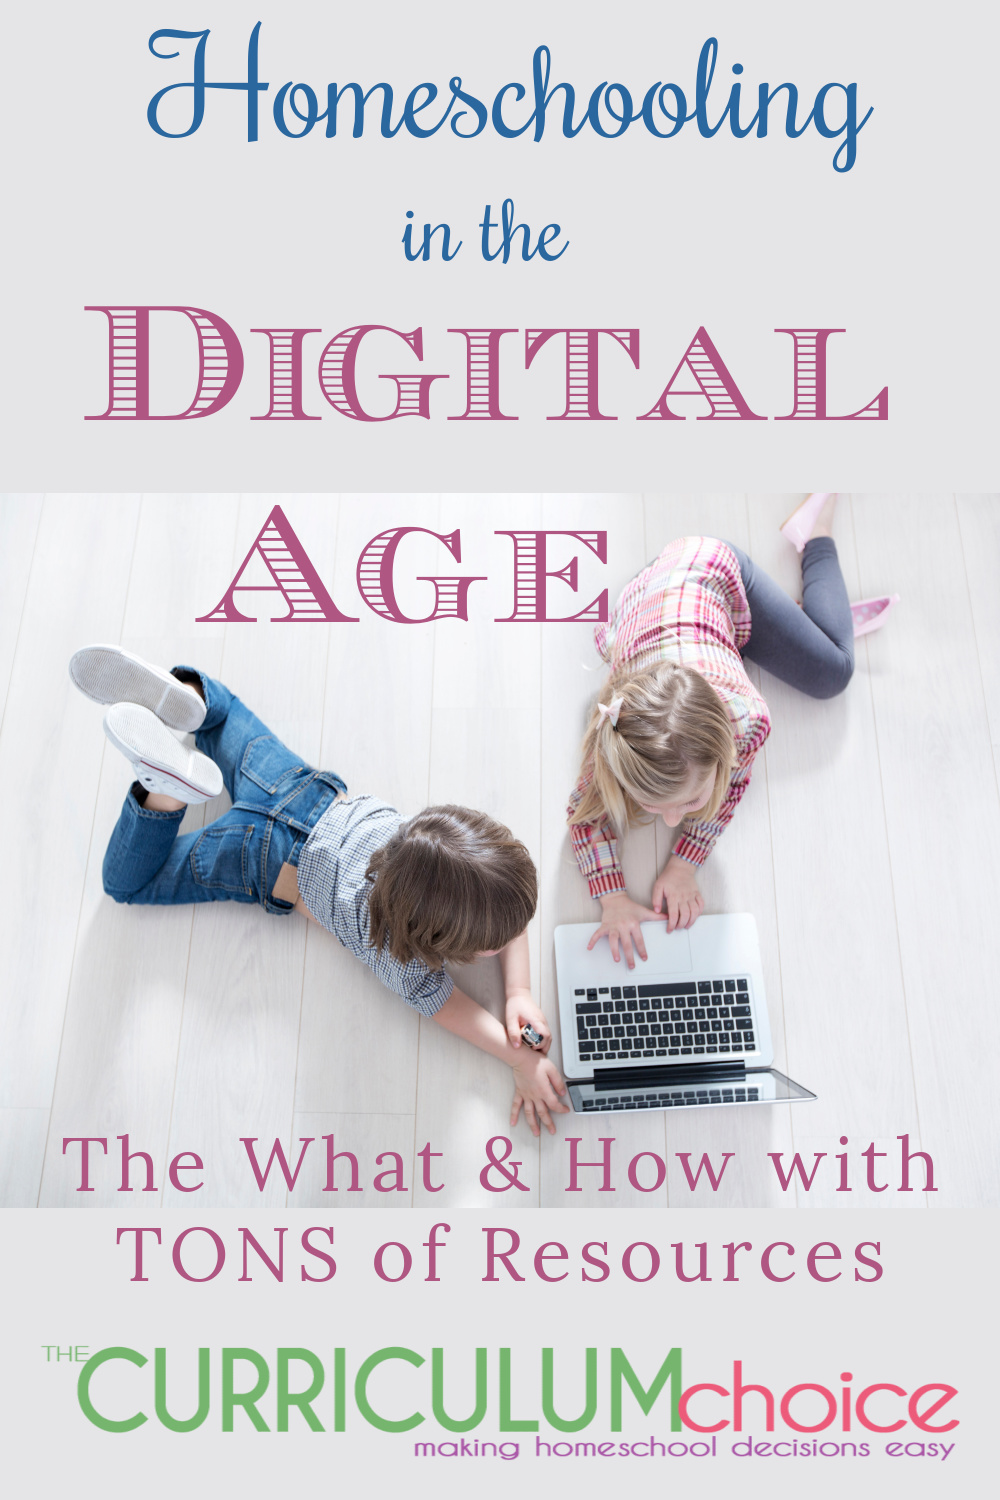 Homeschooling in the Digital Age answers questions about what and how to use digital, virtual, online learning in your homeschool. From The Curriculum Choice